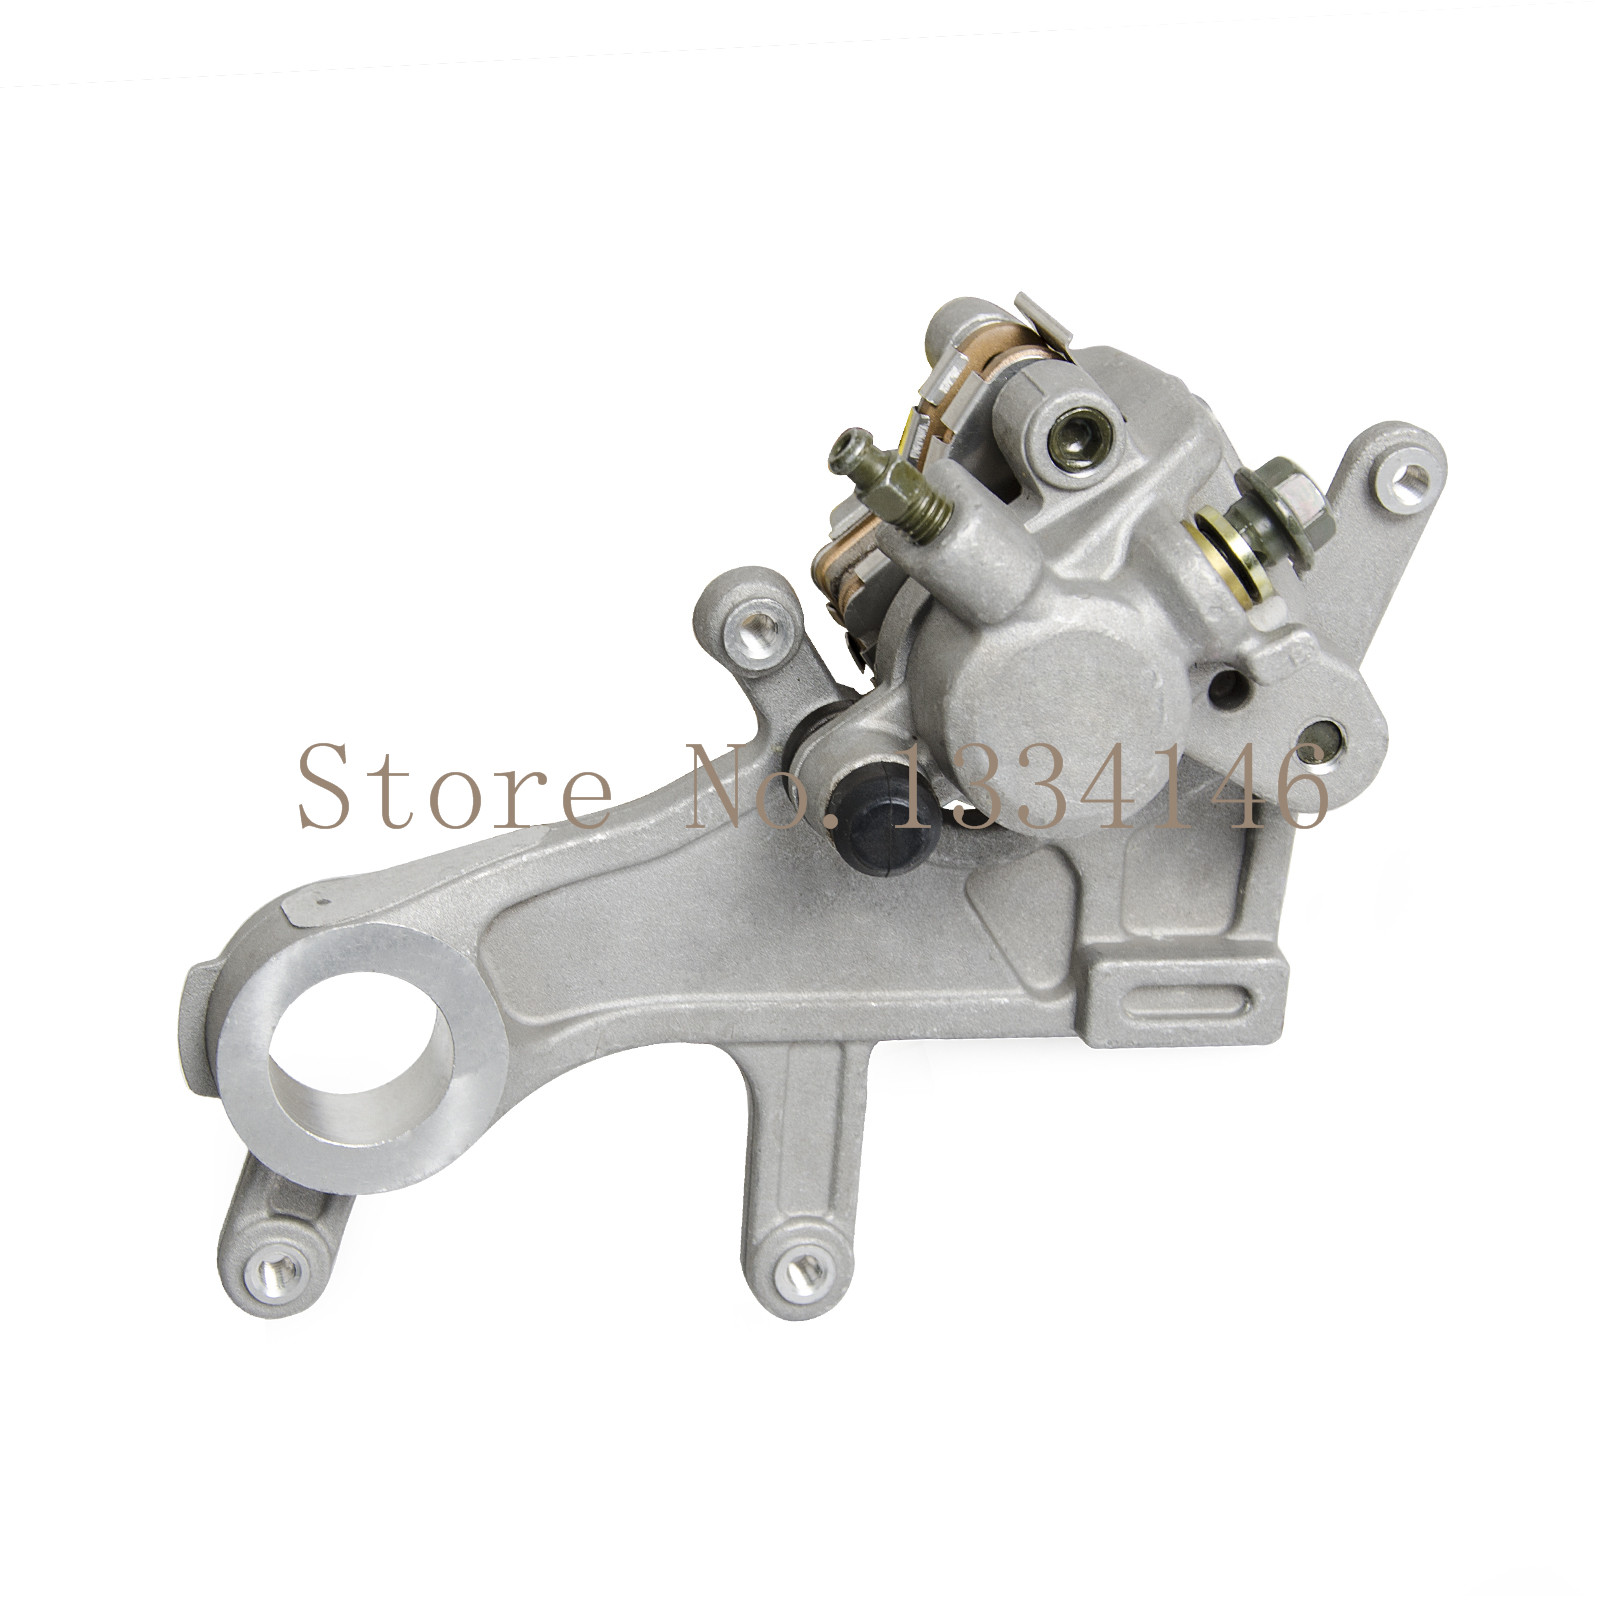 medium resolution of detail feedback questions about motorcycle rear brake caliper for honda crf450r 2002 2015 2016 crf450x crf 450r 450x 2005 2006 on aliexpress com alibaba